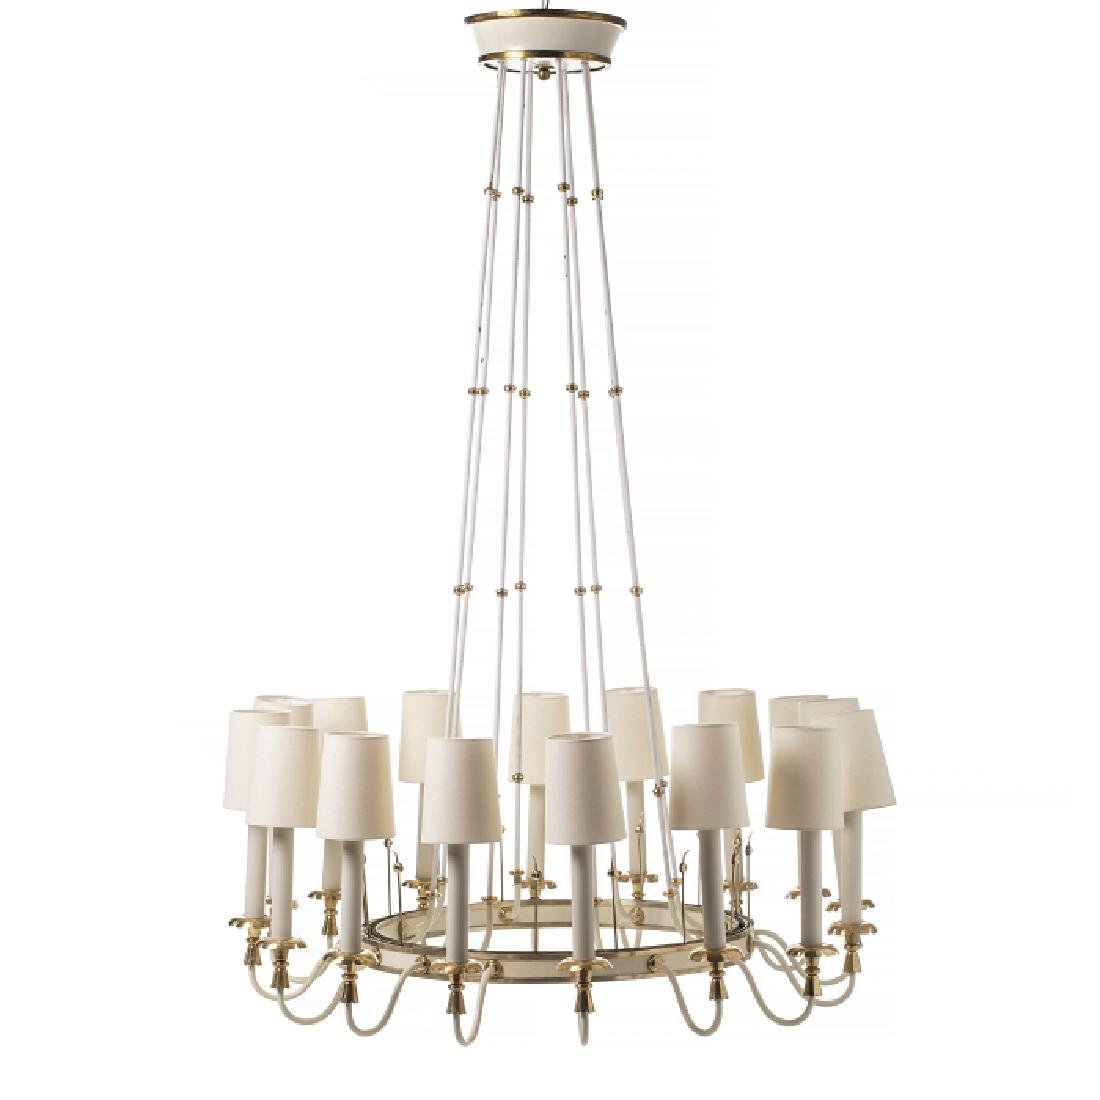 Style of GIO PONTI (1891-1979) - Large chandelier